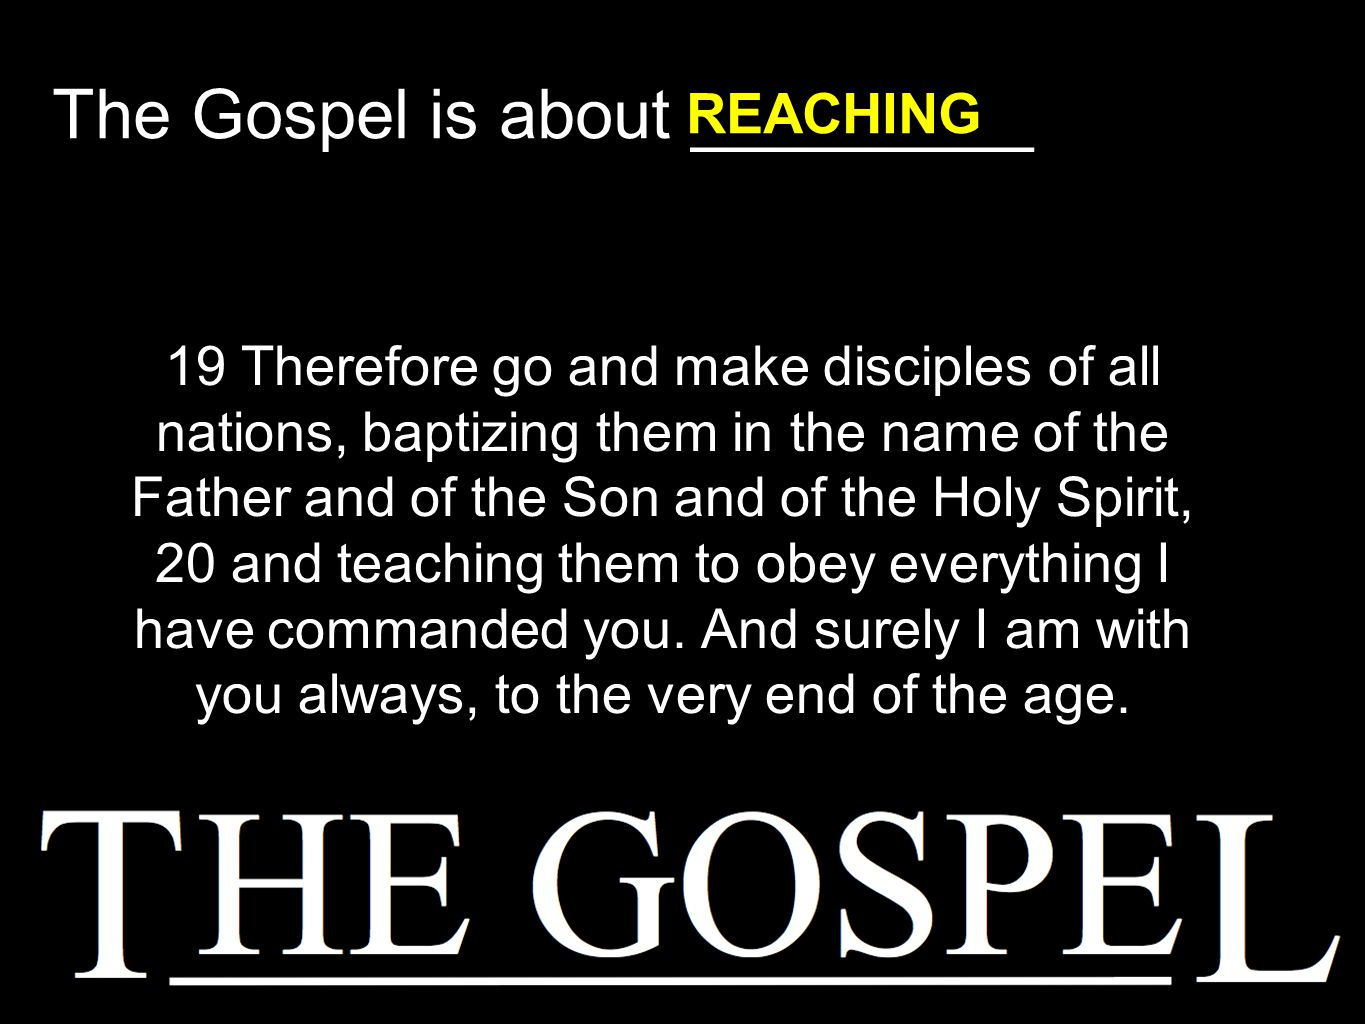 19 Therefore go and make disciples of all nations, baptizing them in the name of the Father and of the Son and of the Holy Spirit, 20 and teaching them to obey everything I have commanded you.